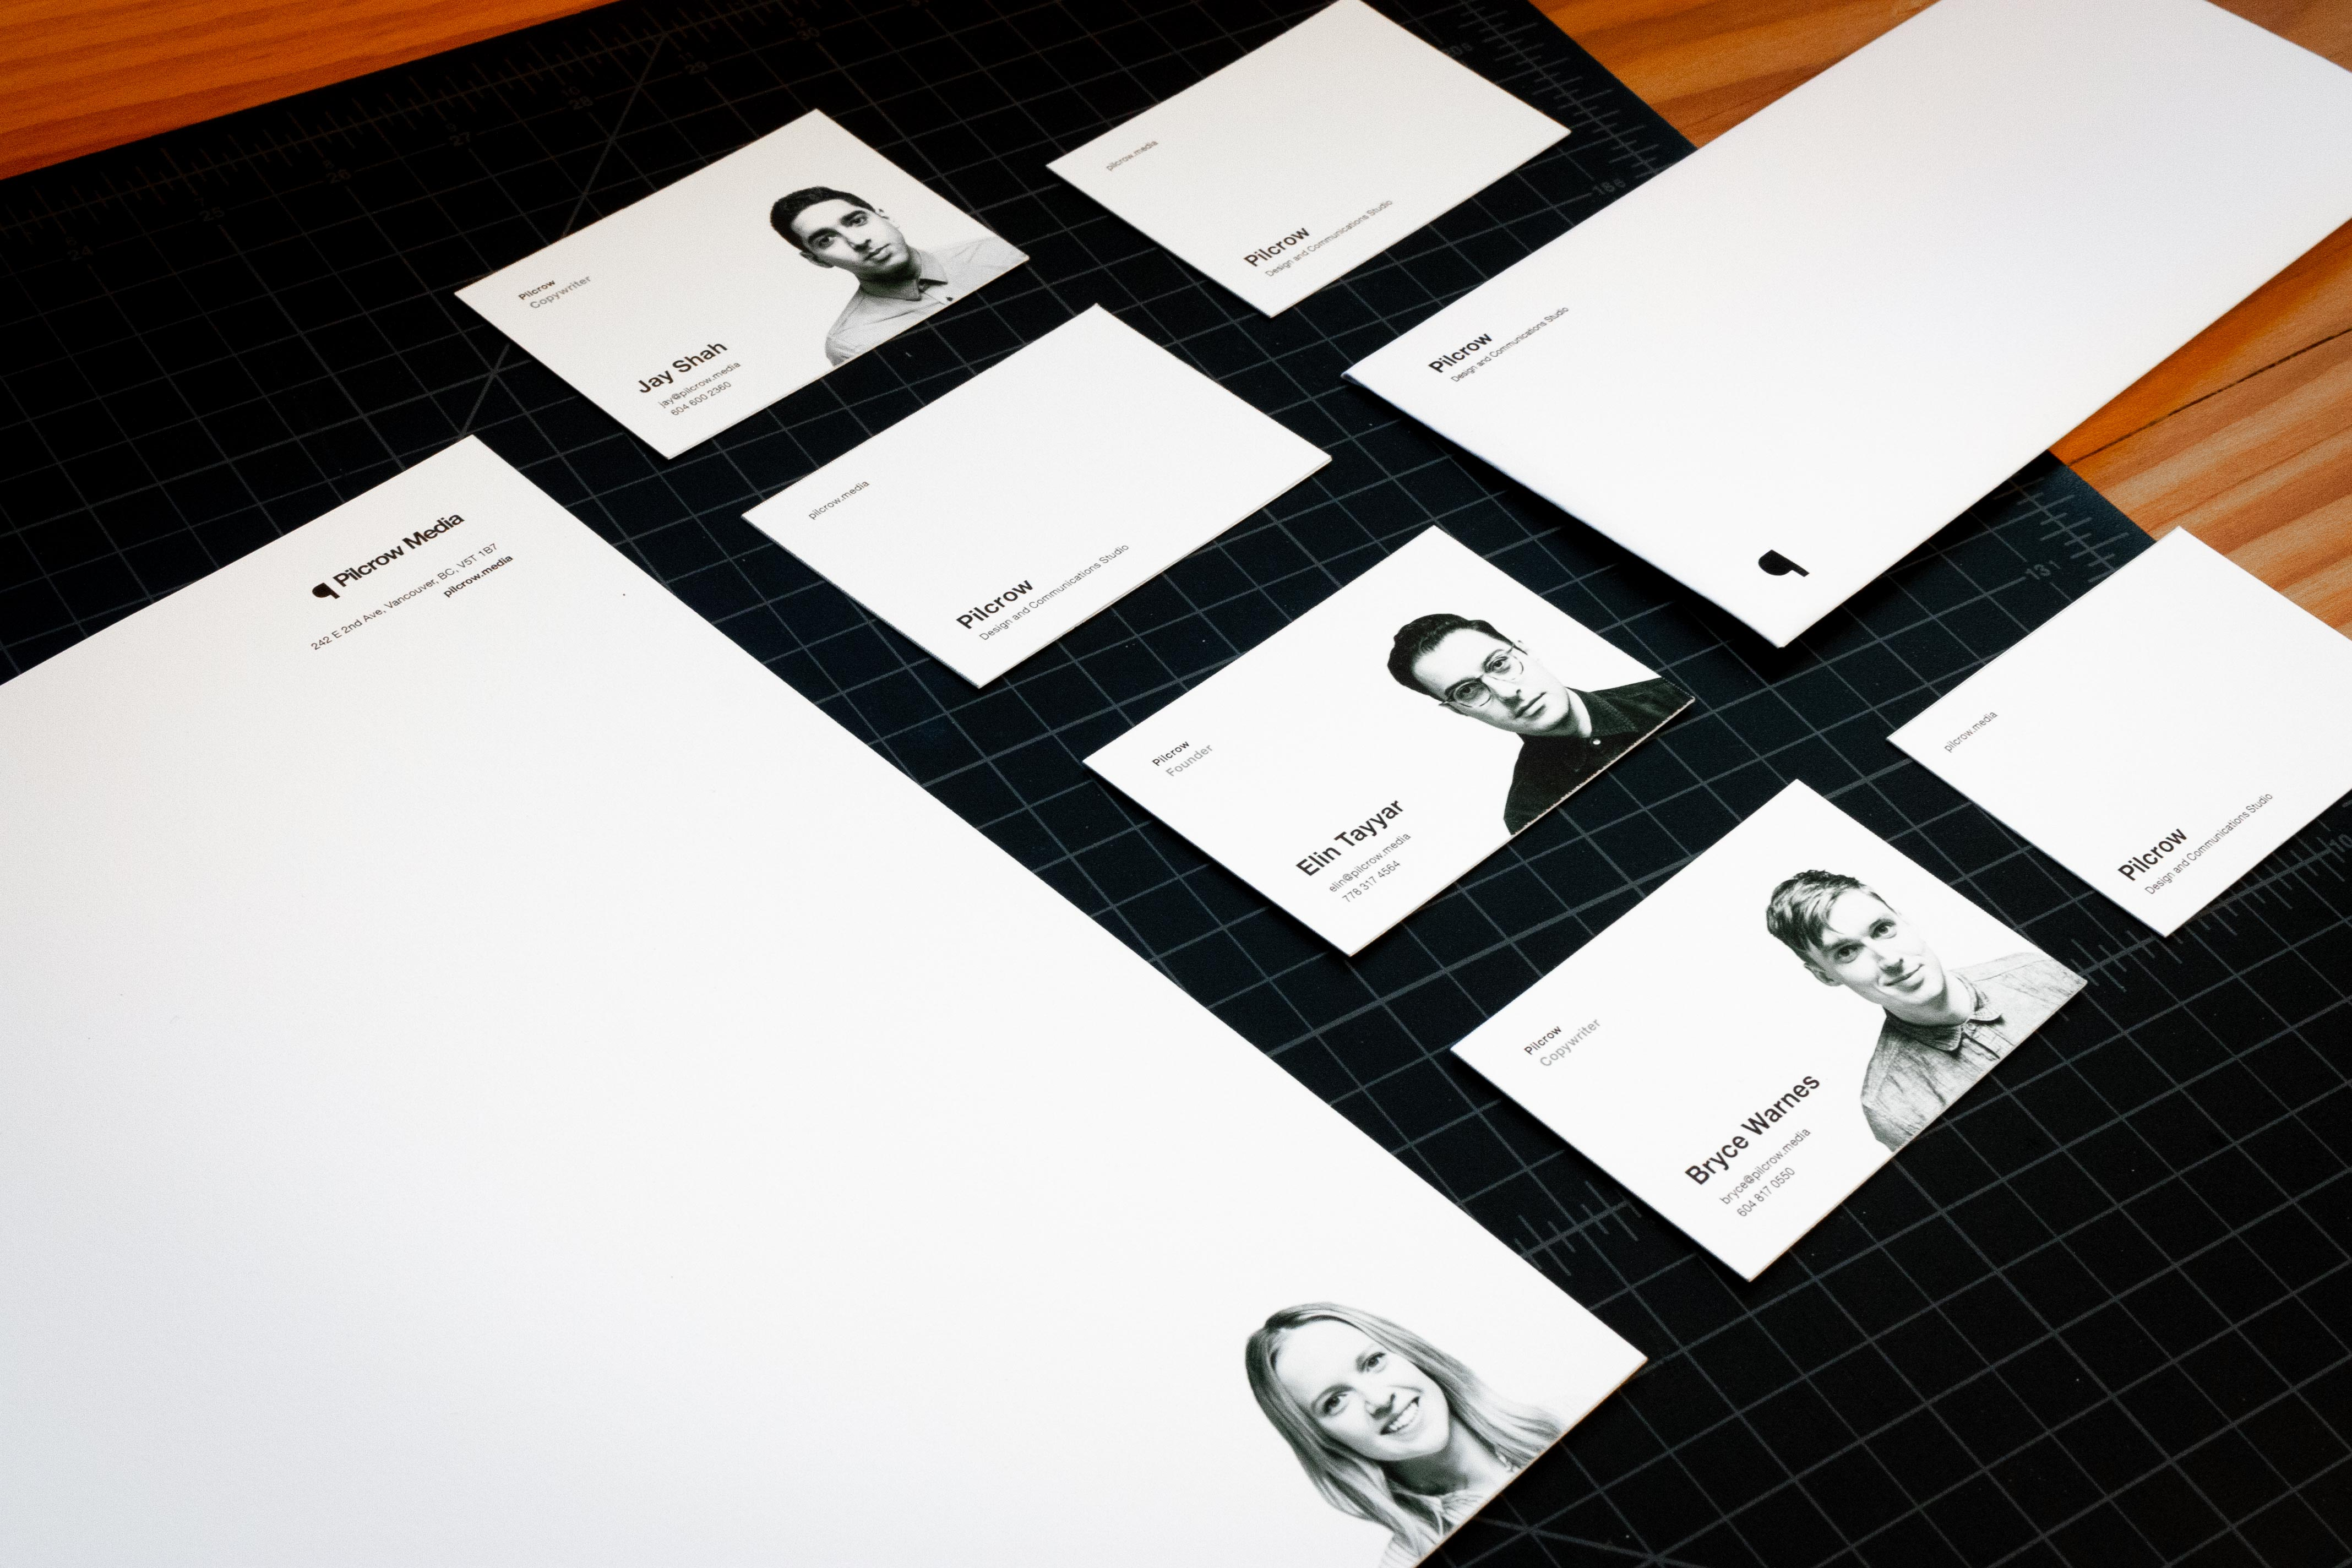 Pilcrow Media envelopes and various personalized letterheads and business cards for each team member featuring their portrait photography — by Yagnyuk.